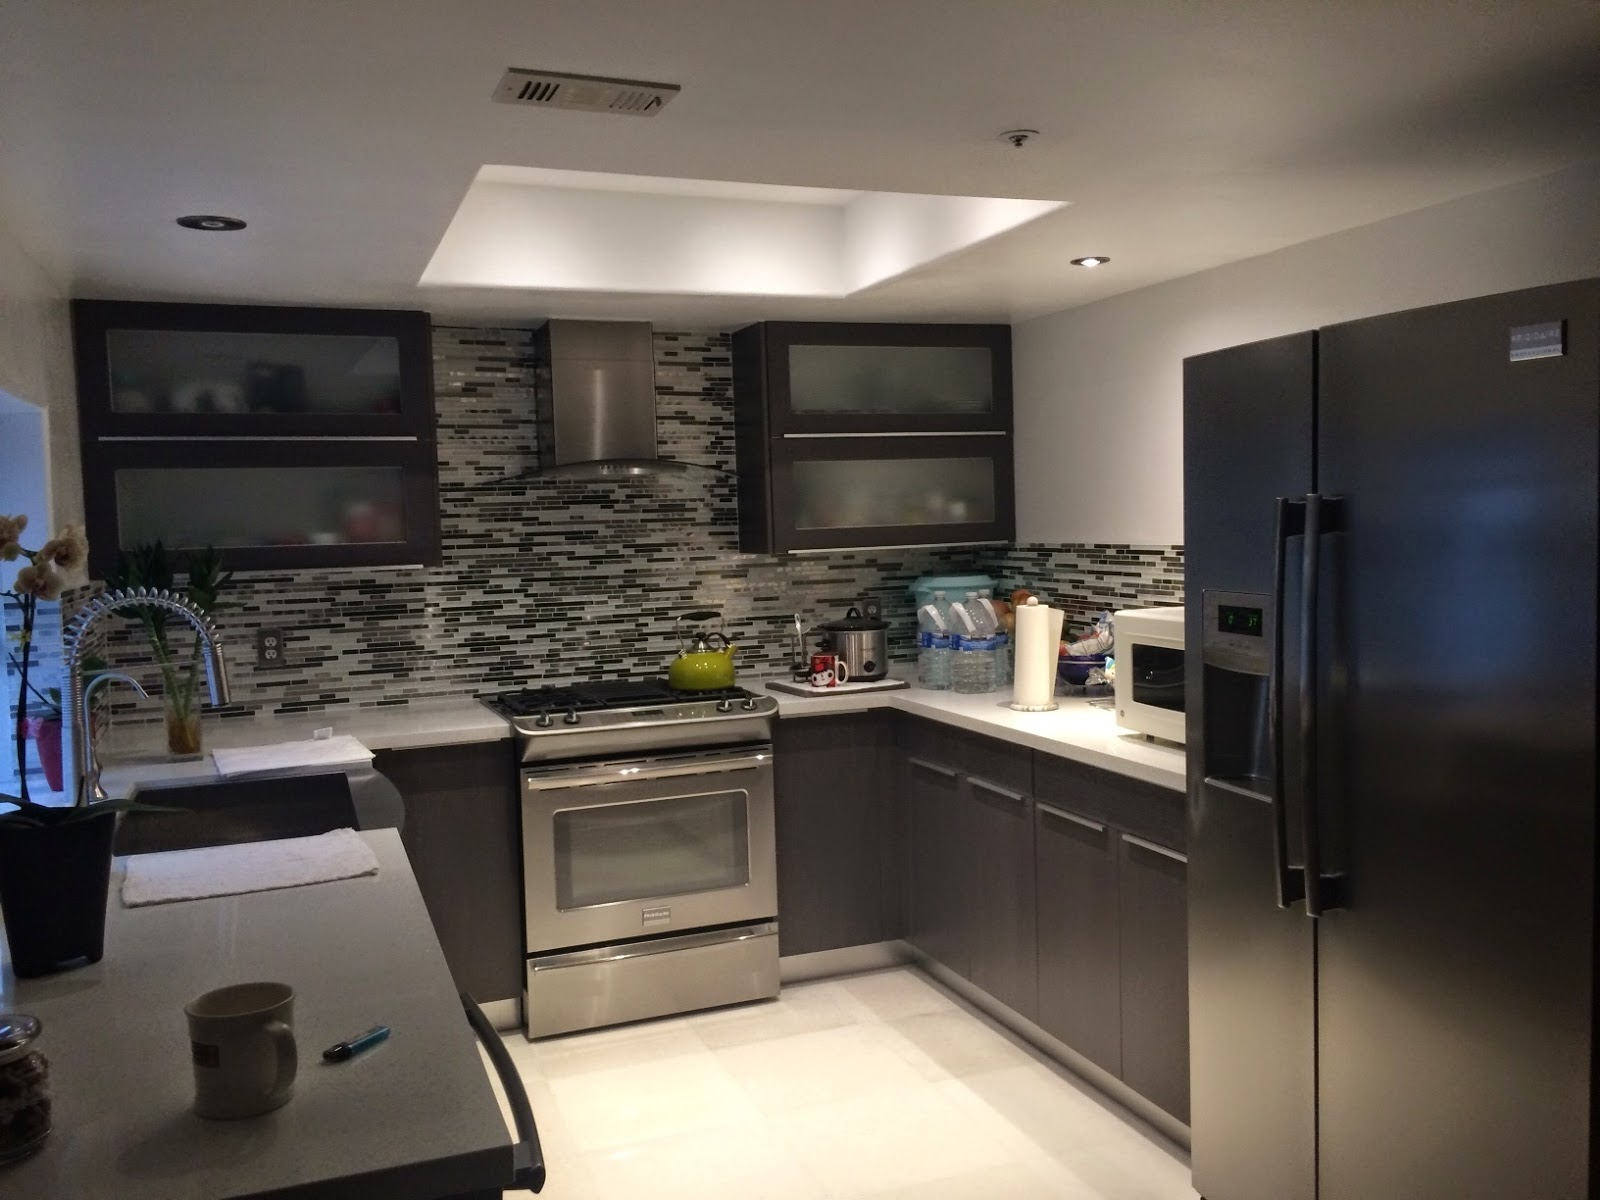 European kitchen cabinets for less - Flat Panels Or European Style Cabinets Are Finished With Quality Thermofoils That Are Highly Resistant To Moisture European Style Cabinets Are Less